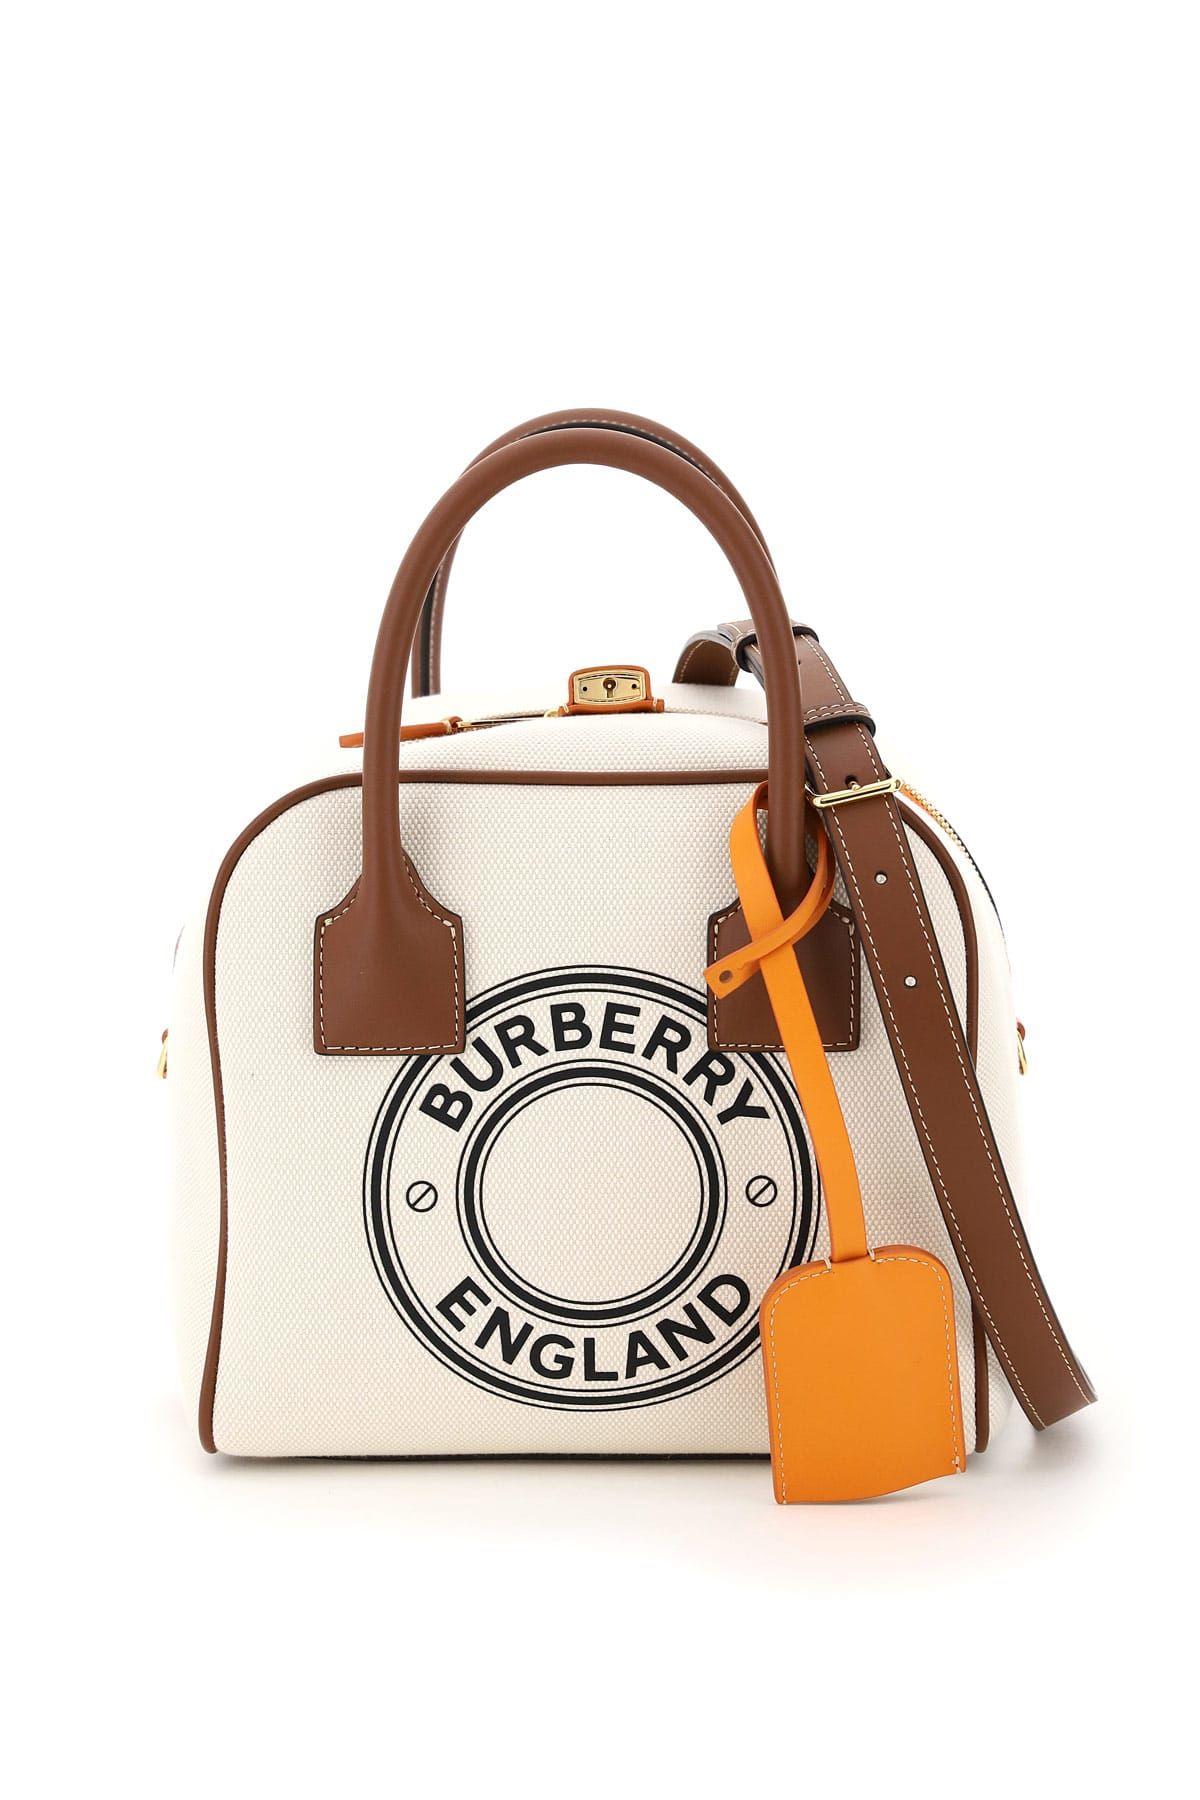 Burberry Canvases SMALL CUBE BAG